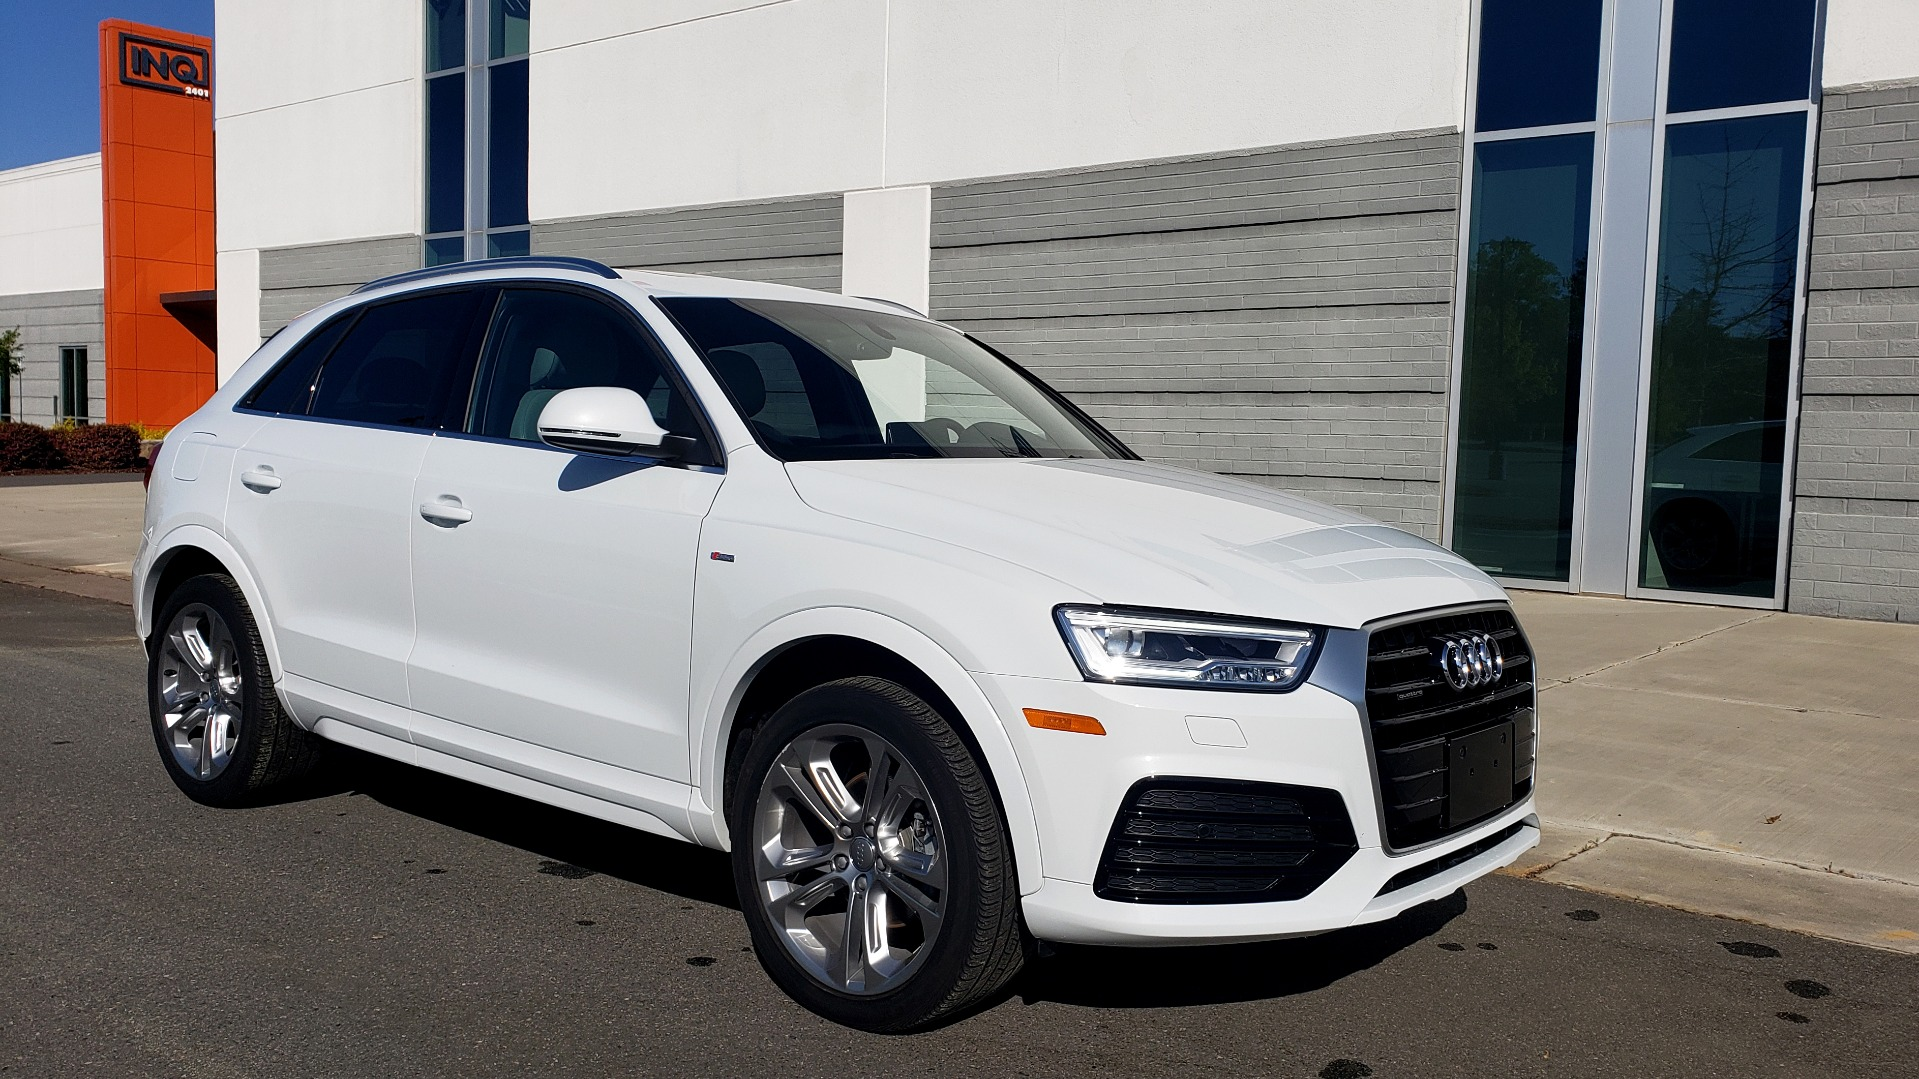 Used 2018 Audi Q3 PREMIUM PLUS 2.0T / SPORT PKG / NAV / BOSE / SUNROOF / REARVIEW for sale Sold at Formula Imports in Charlotte NC 28227 4